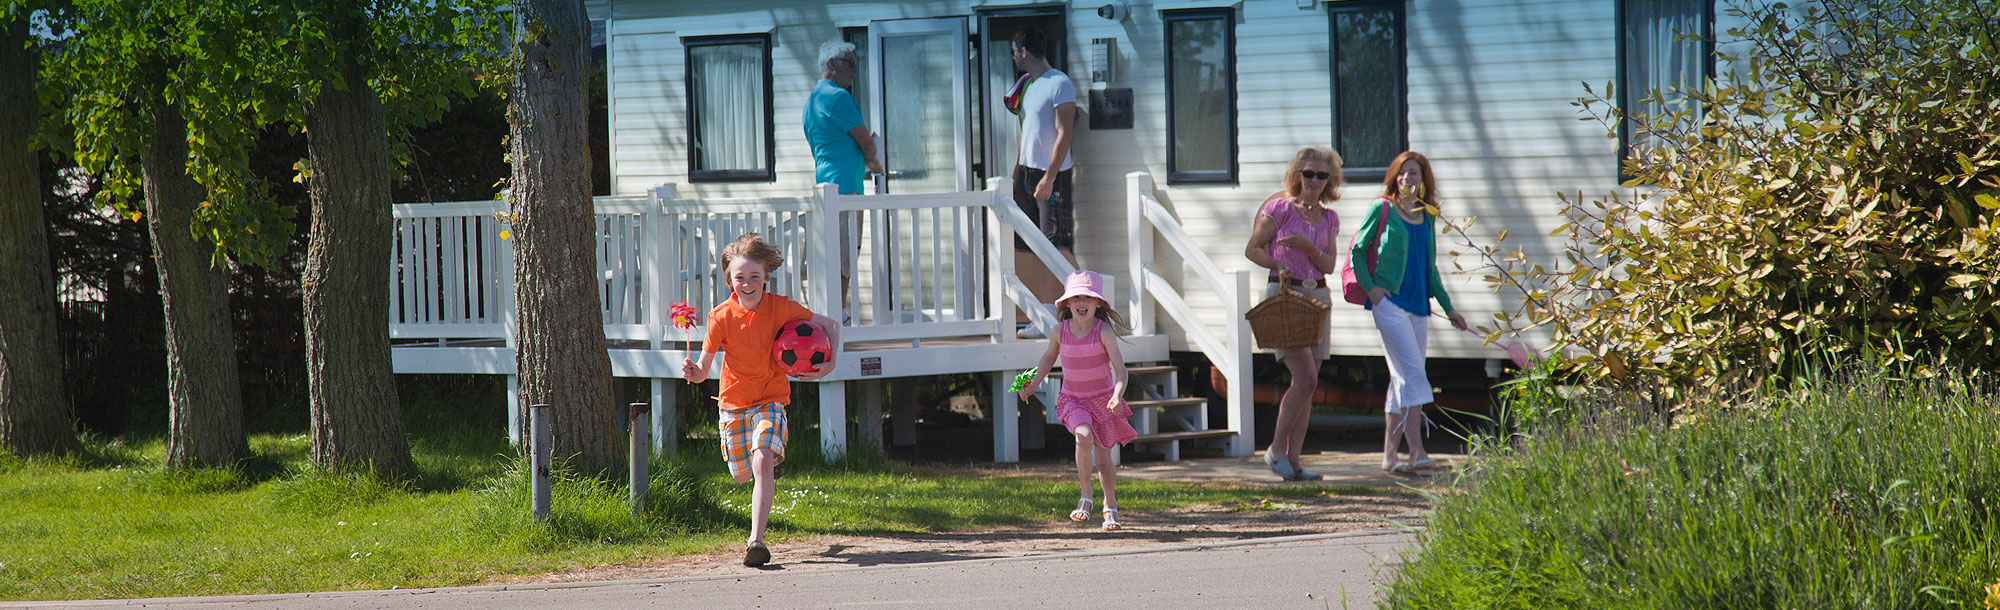 Waldegraves holiday park, Essex - Caravan holidays